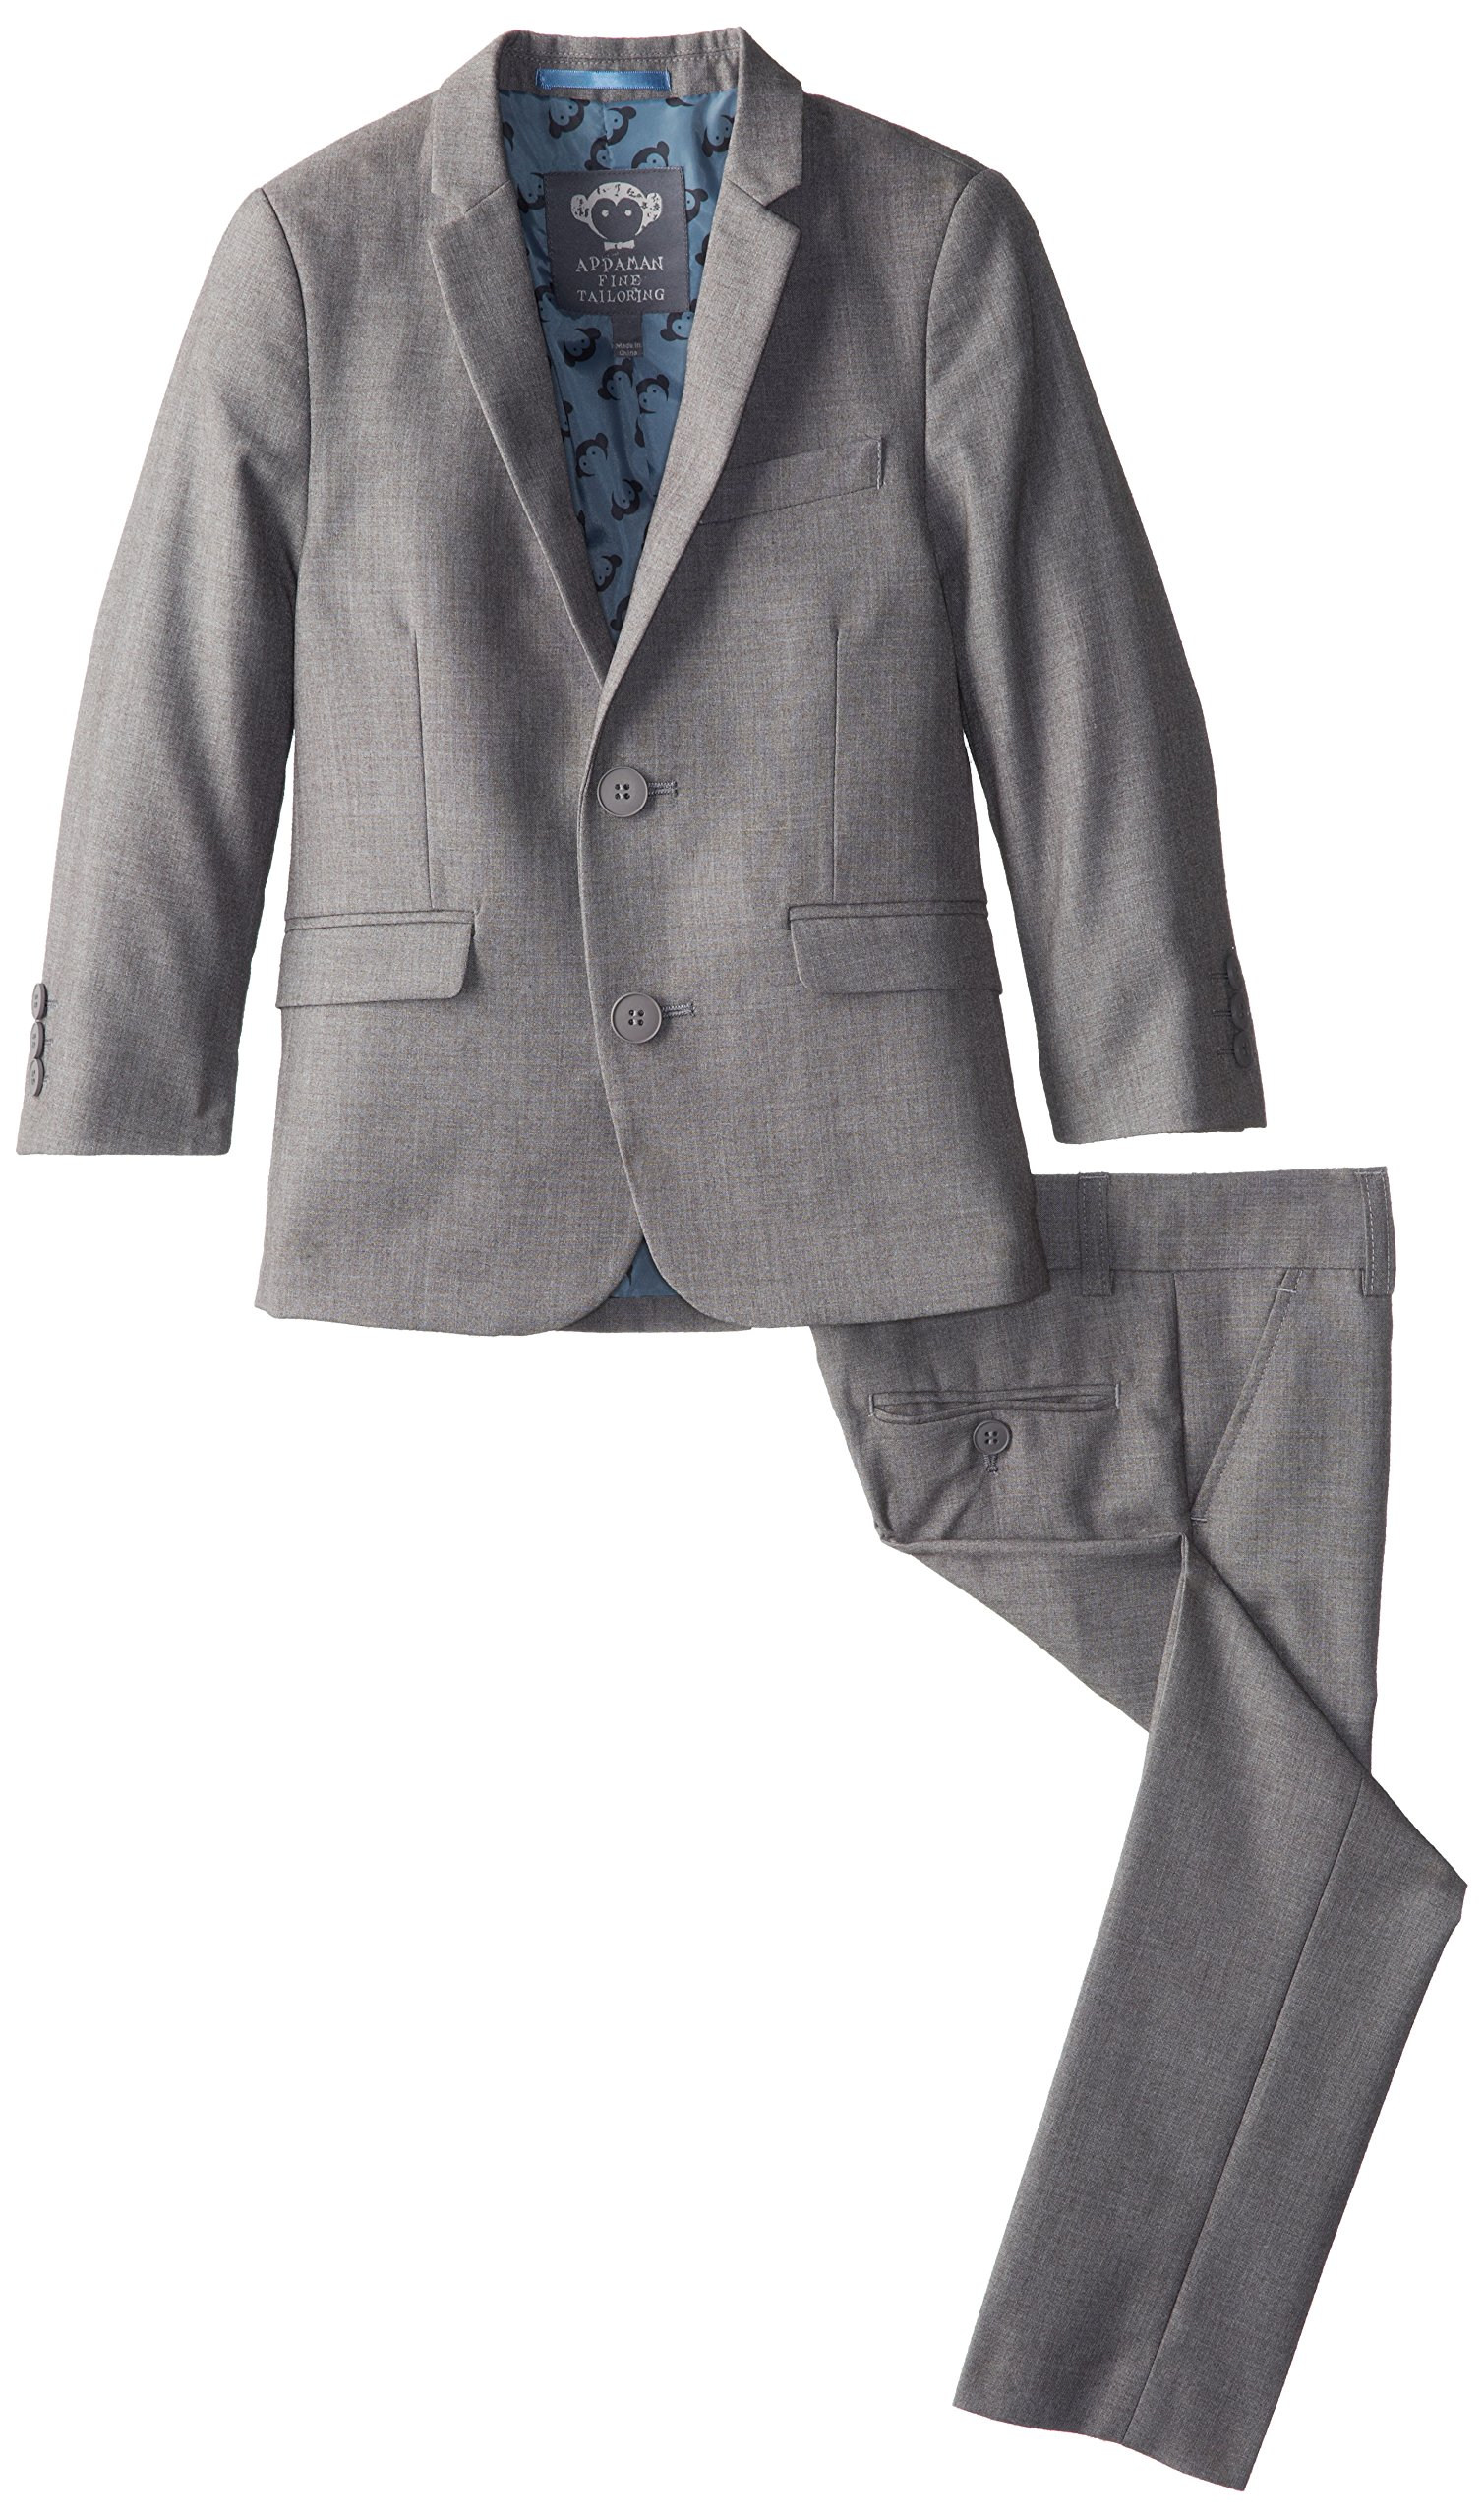 Appaman Little Boys' 2 Piece Classic Mod Suit, Mist, 5